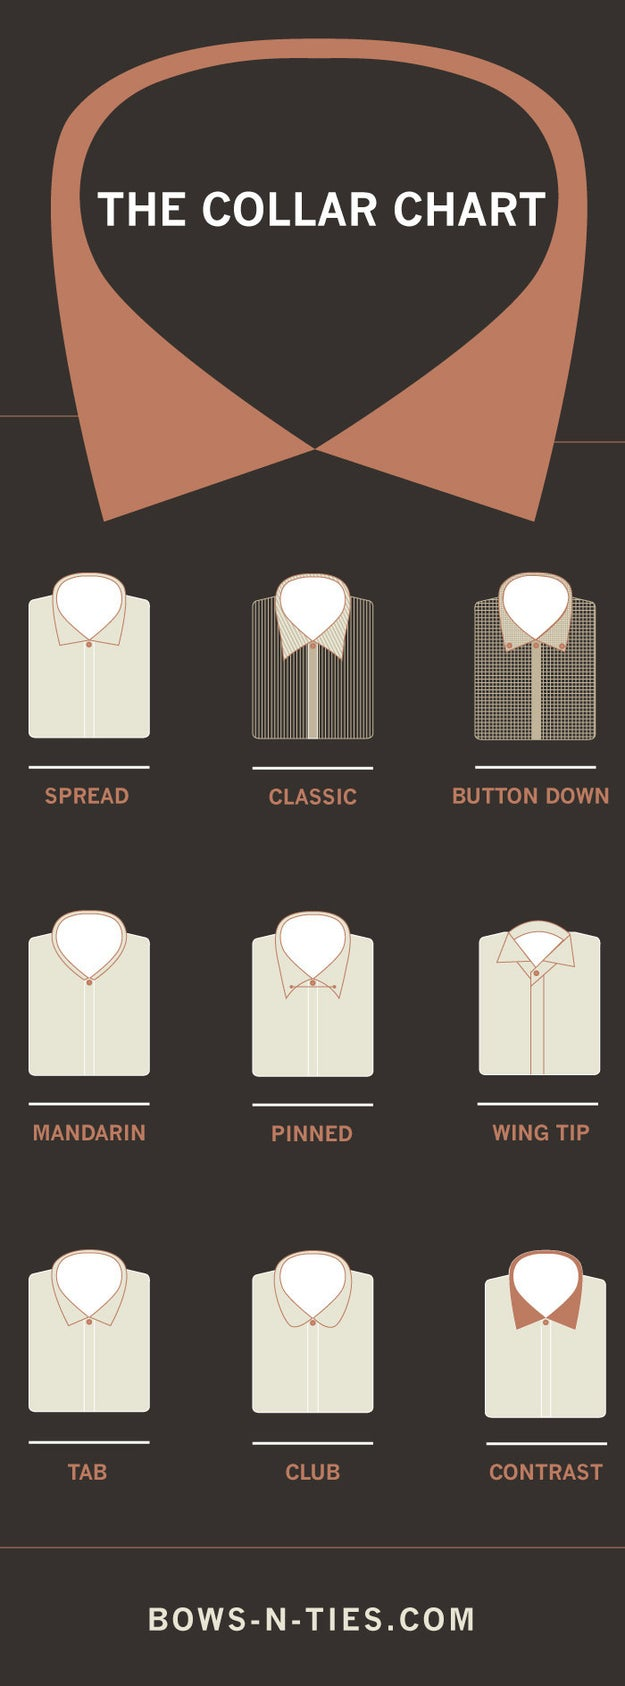 Keep up with your collars.